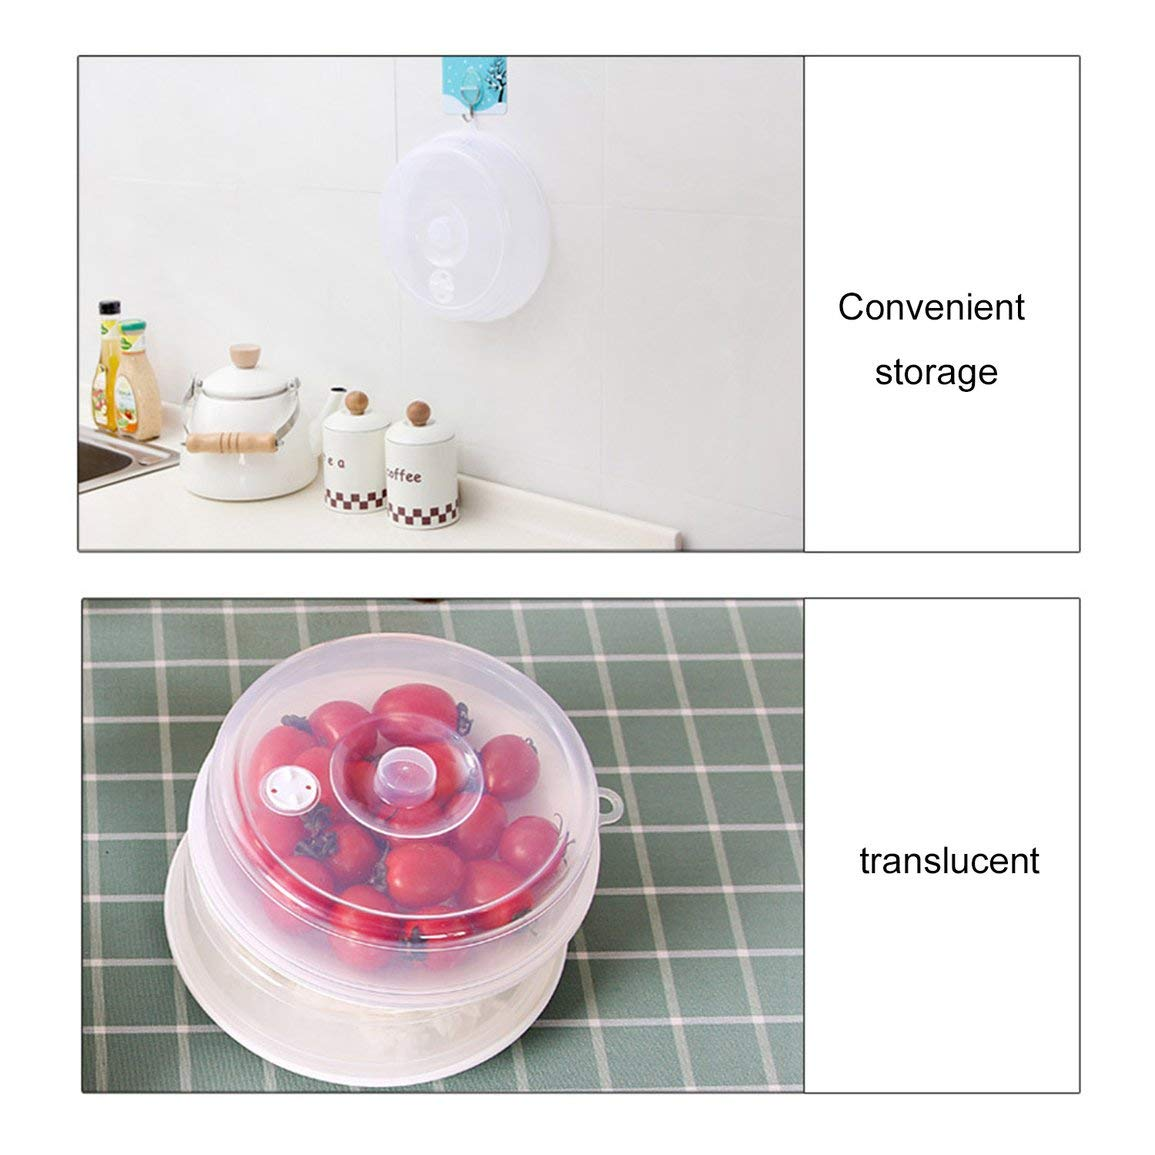 Kitchen Sealing Cover Heating Cover Oil Presenter Cover Fresh Keeping Sealing Special for Refrigerator Microwave Oven